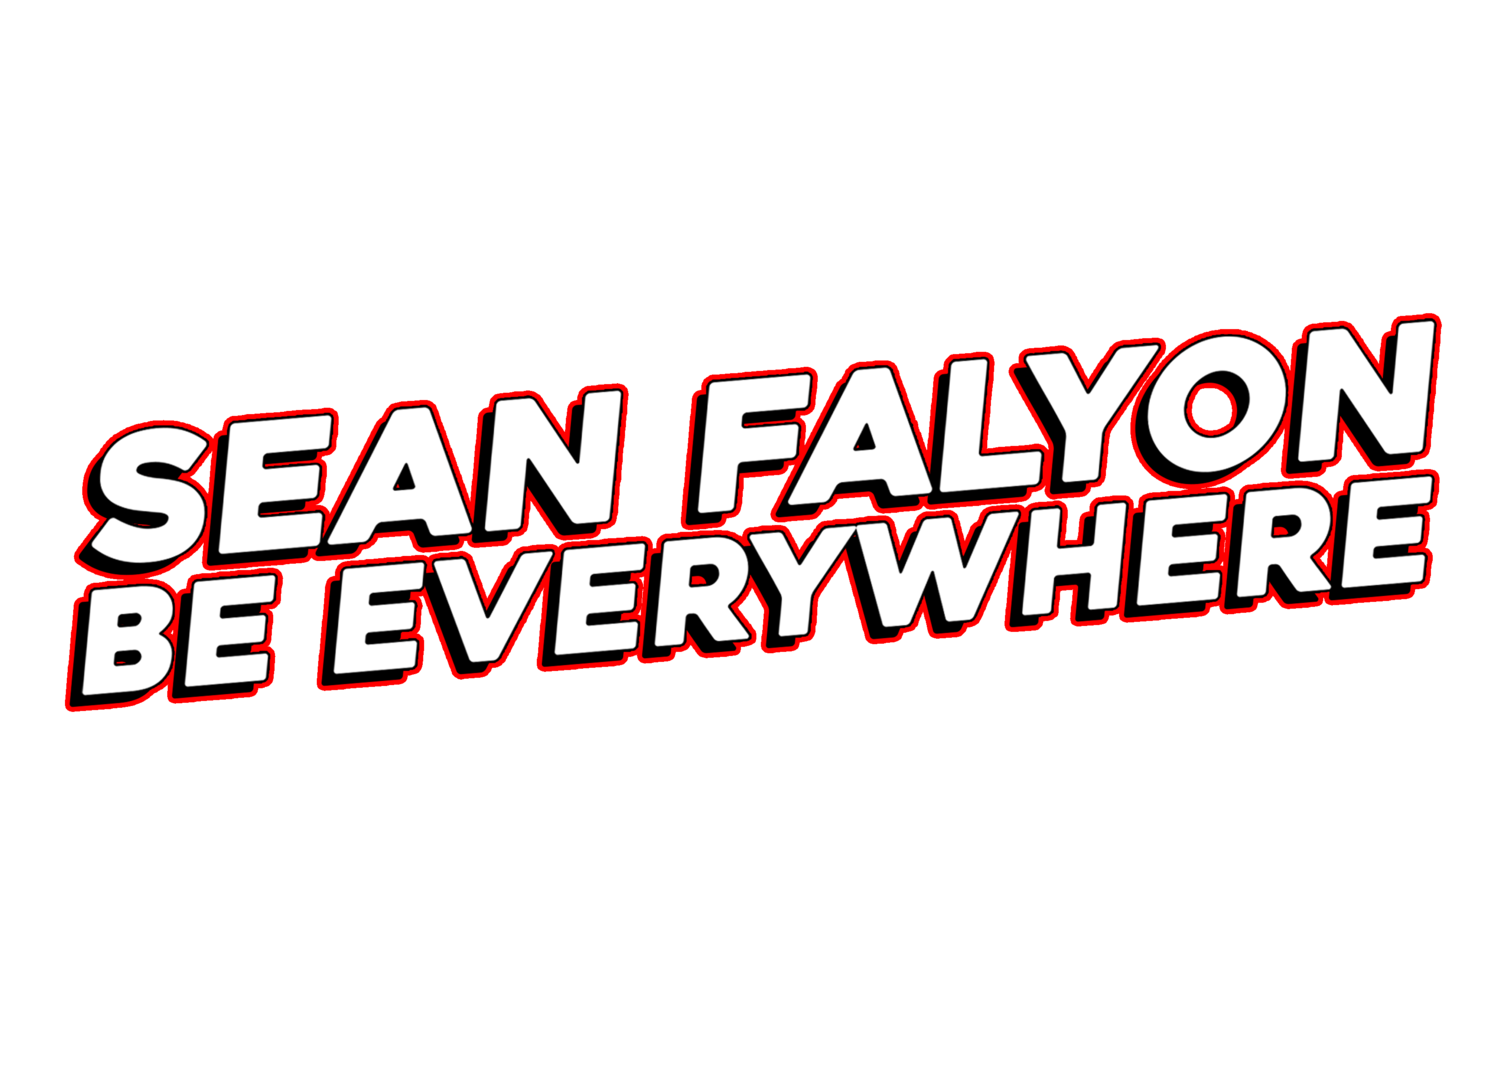 SEAN FALYON BE EVERYWHERE